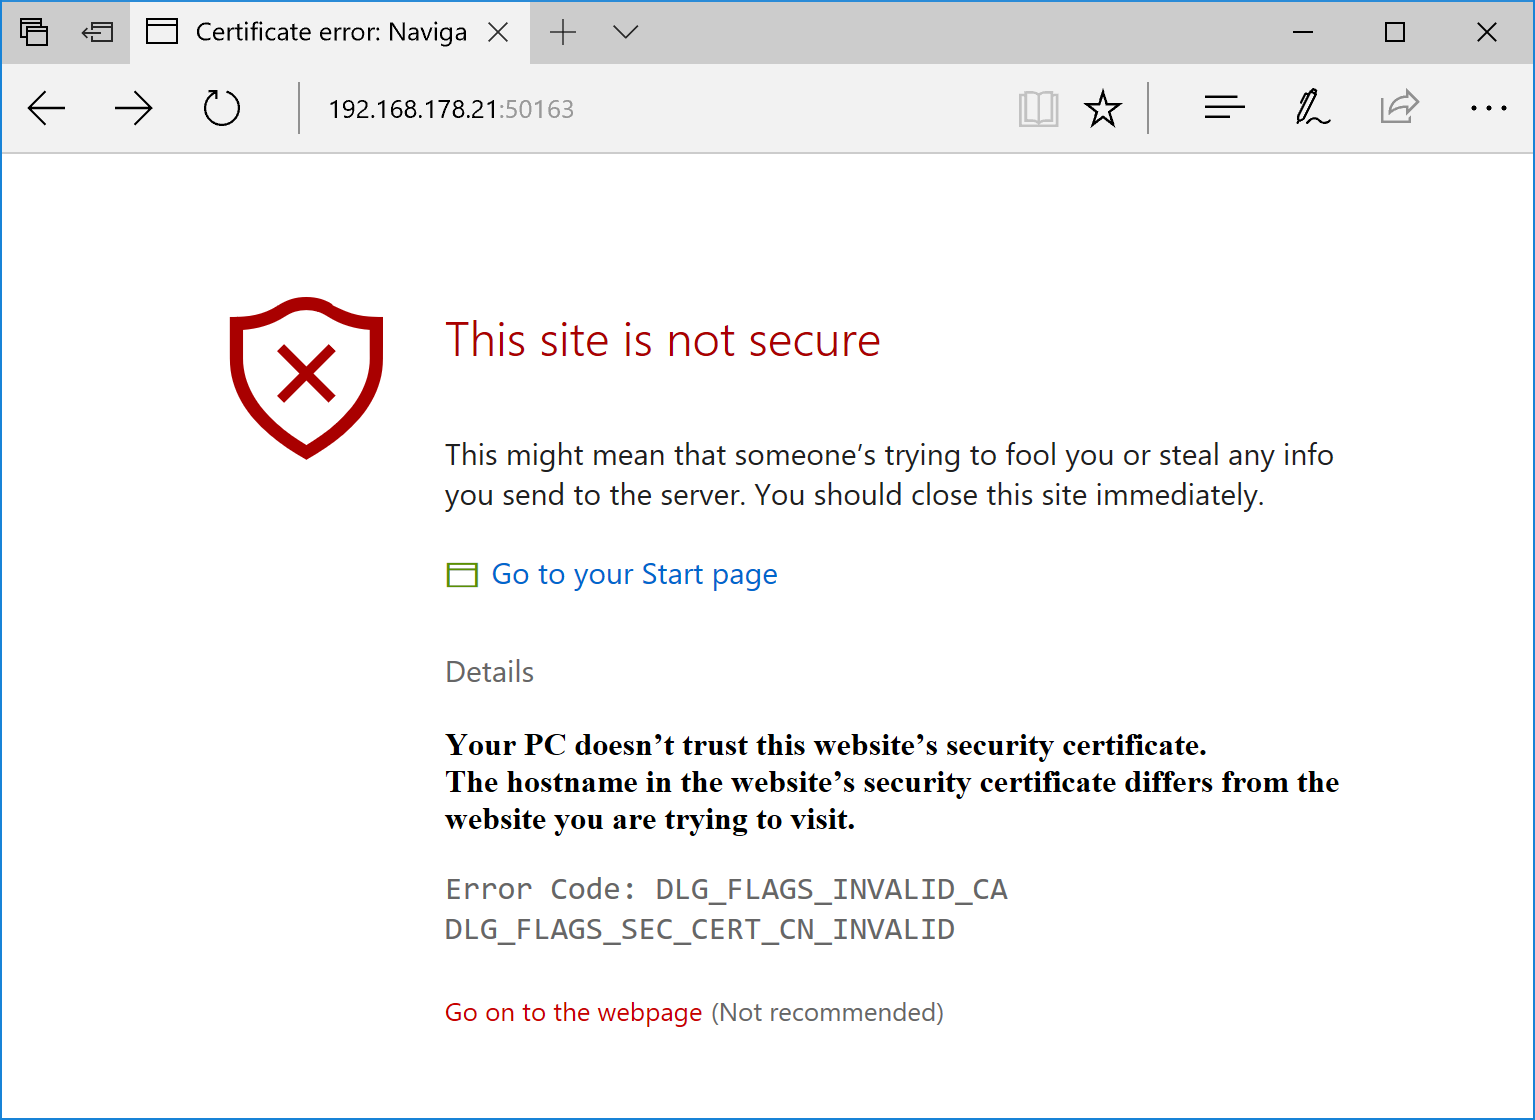 The self-signed SSL certificate is not valid in the browser.